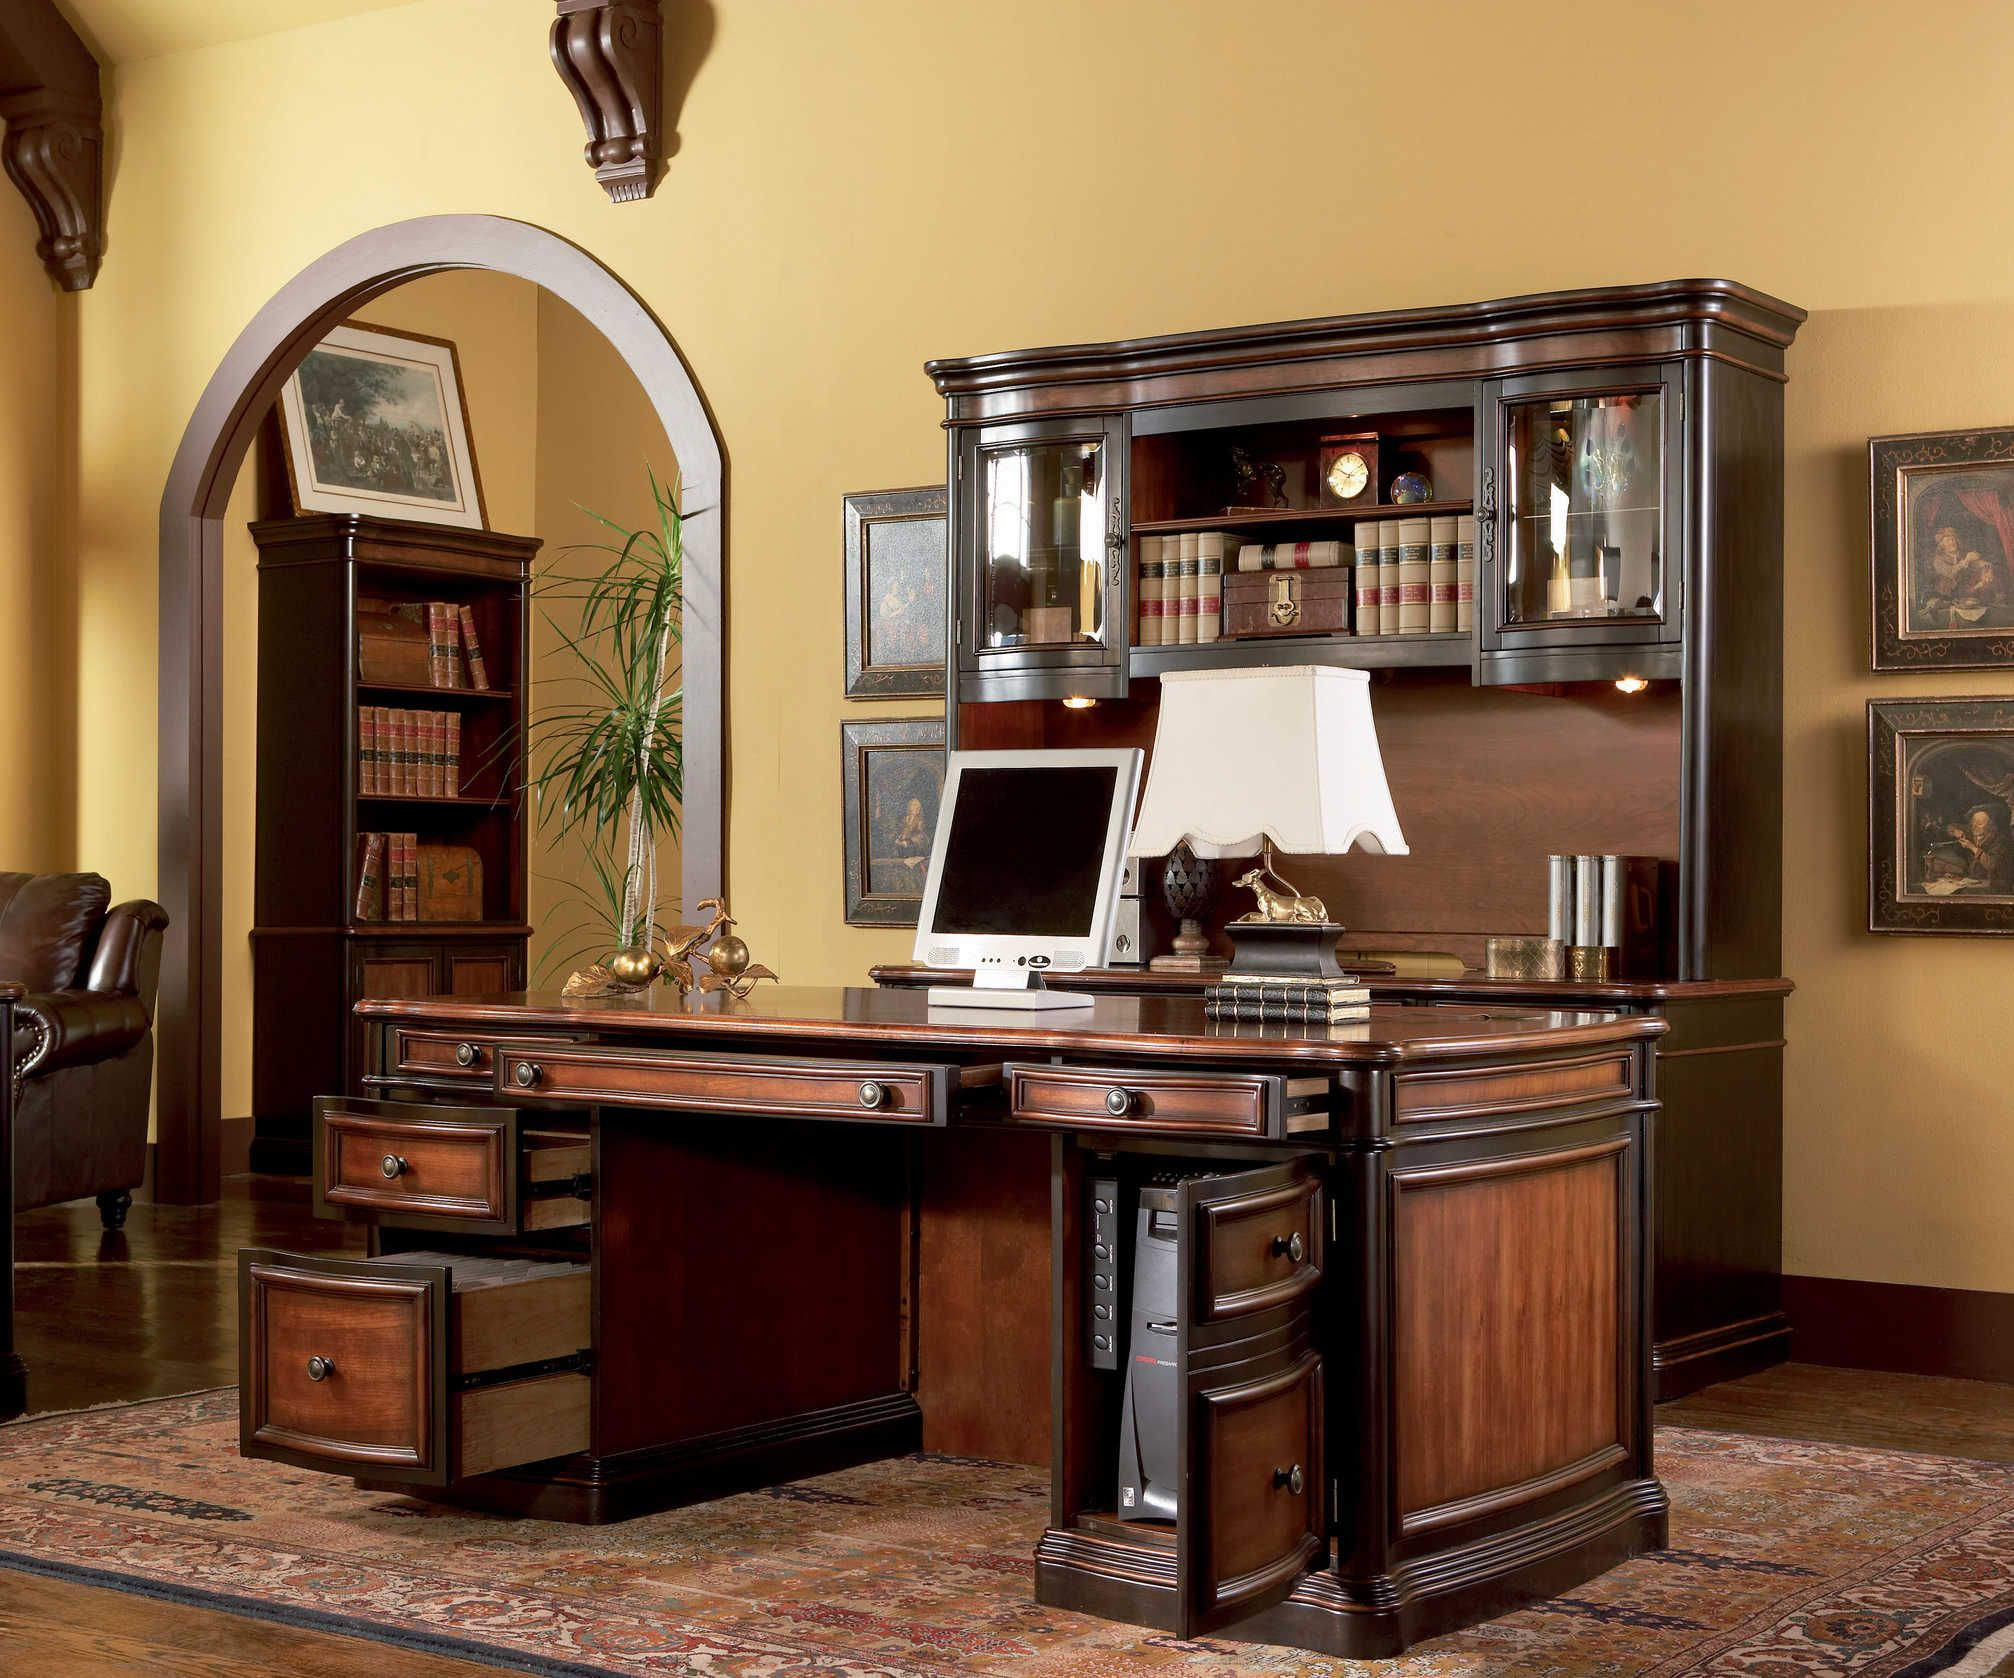 Old World Executive Computer Desk Home Office Furniture Credenza Hutch Black Cherry And Gold 200